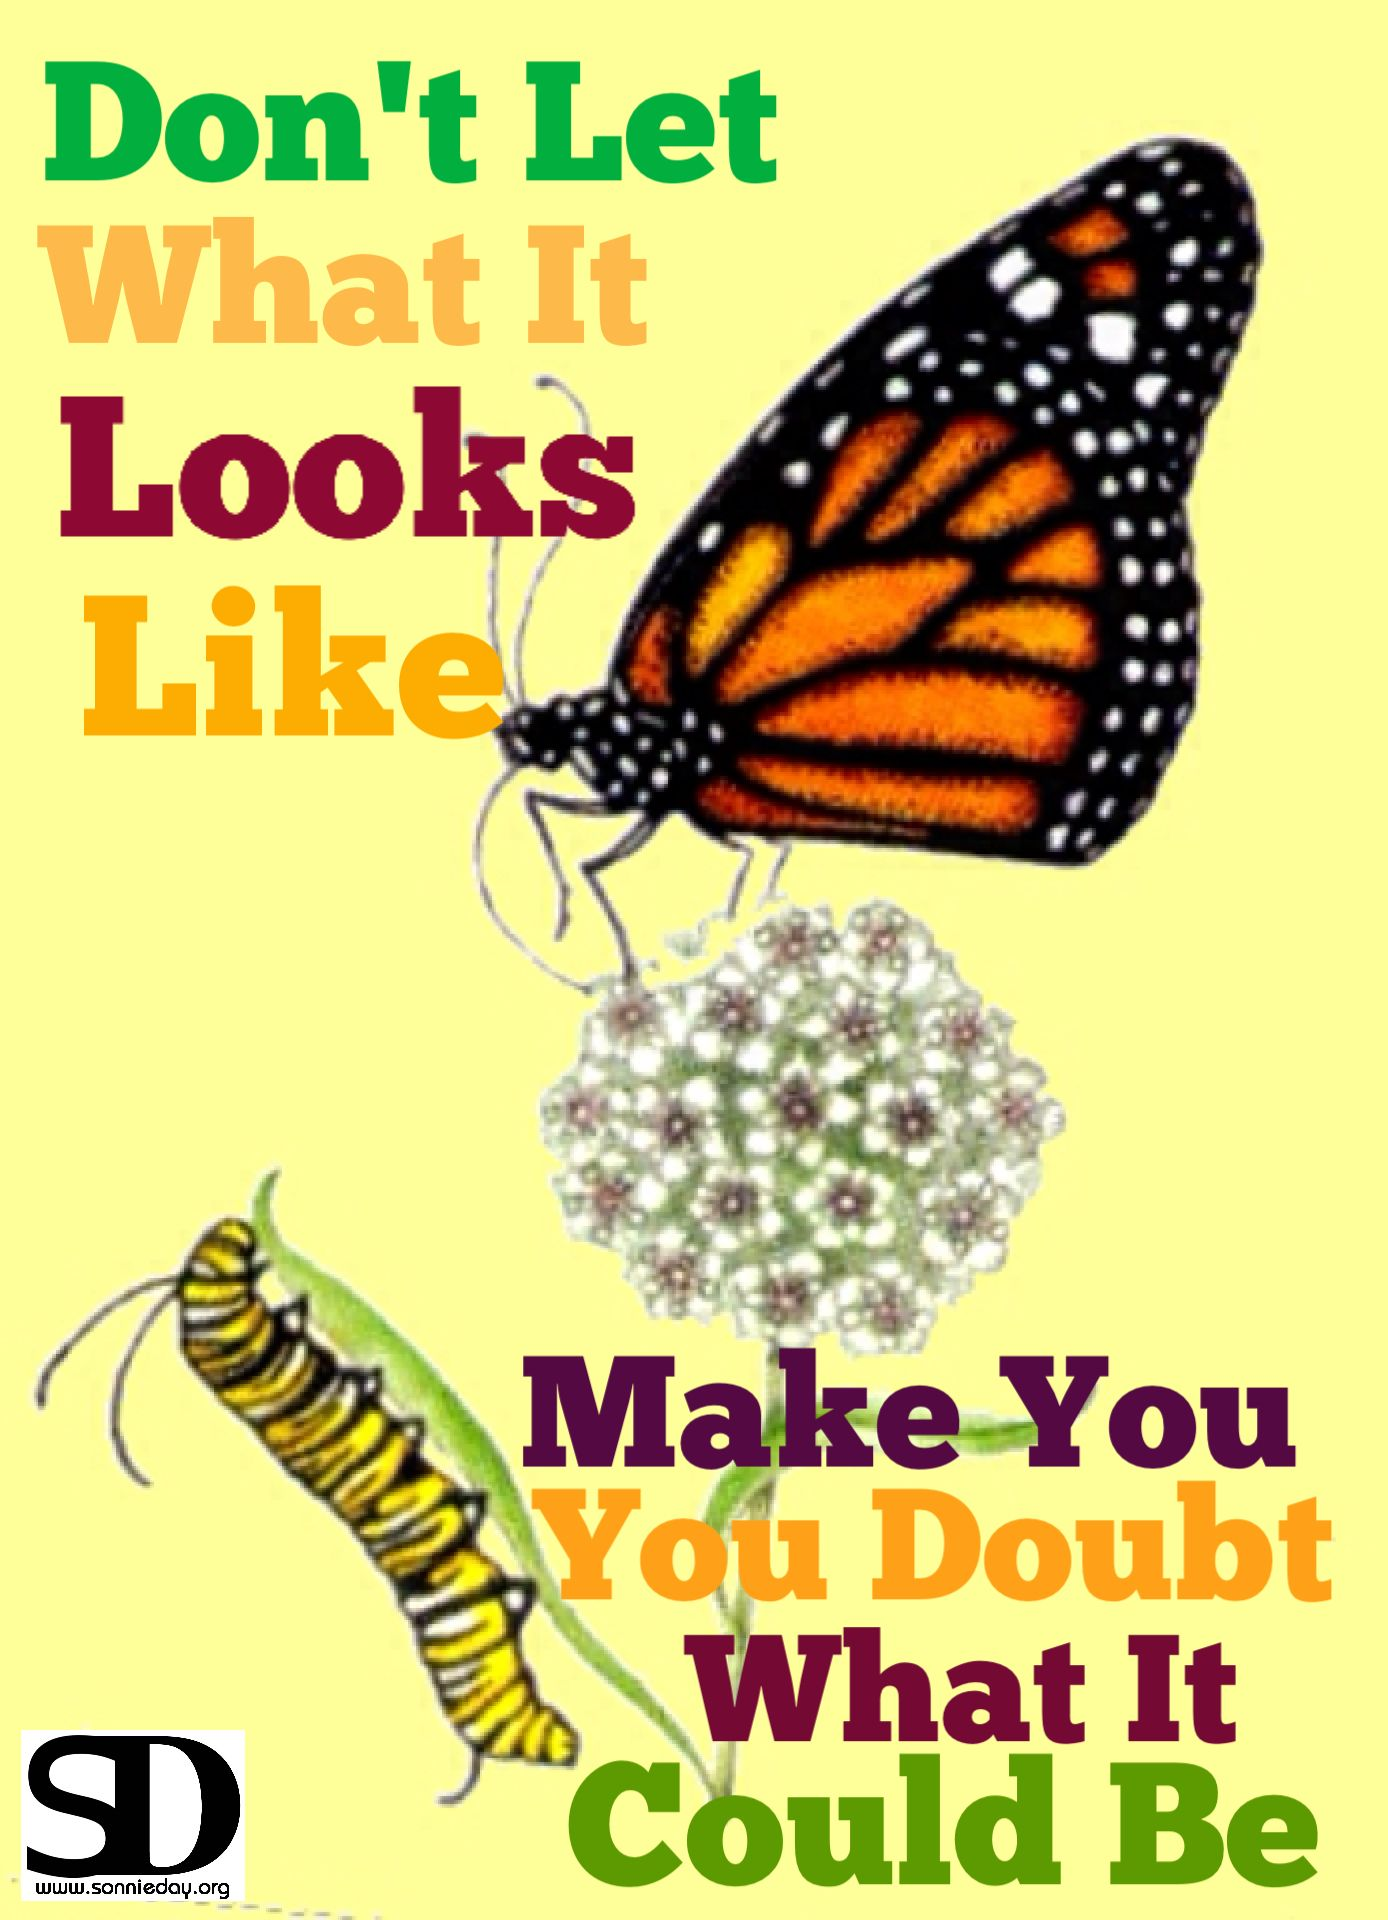 More butterfly inspirations at